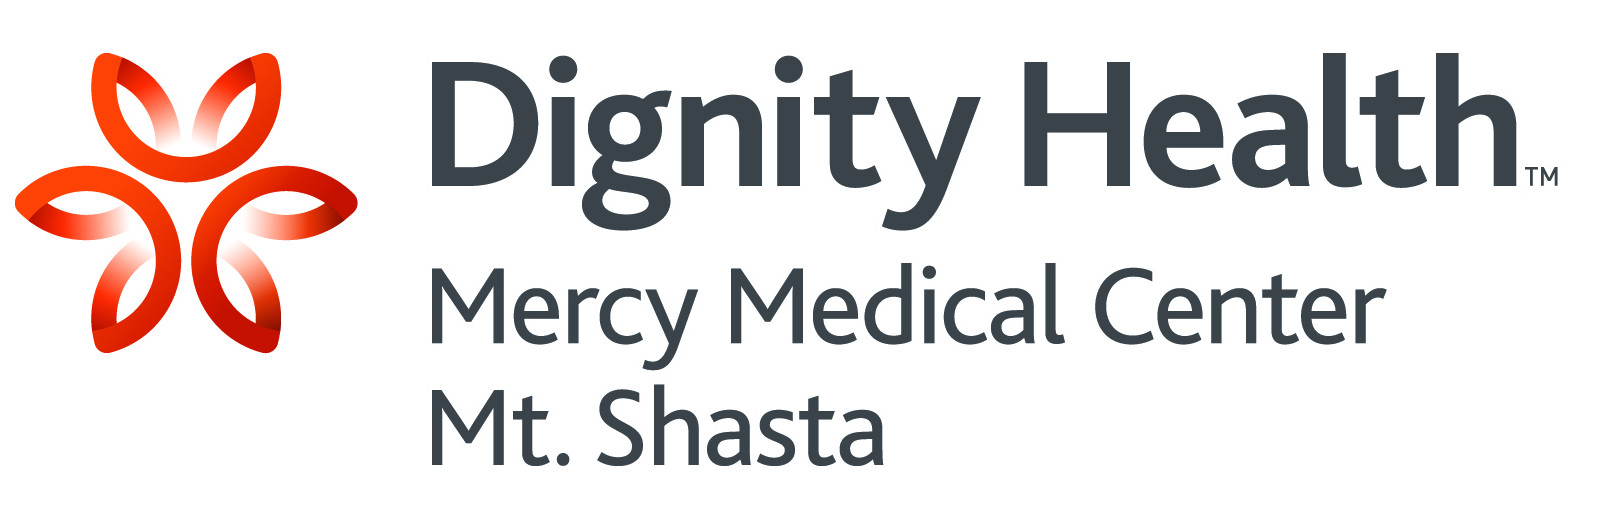 Dignity Health - Mt. Shasta Mercy Medical Mt. Shasta